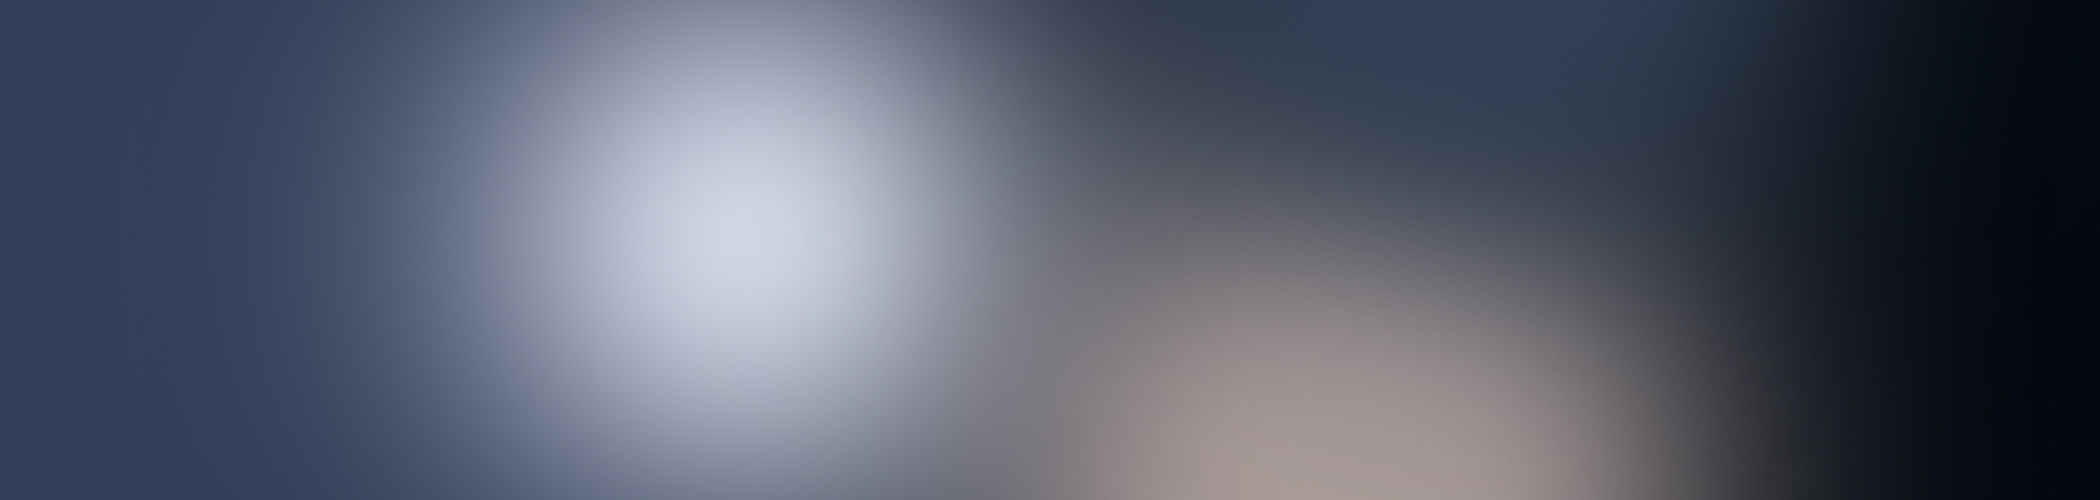 blue_gray_background